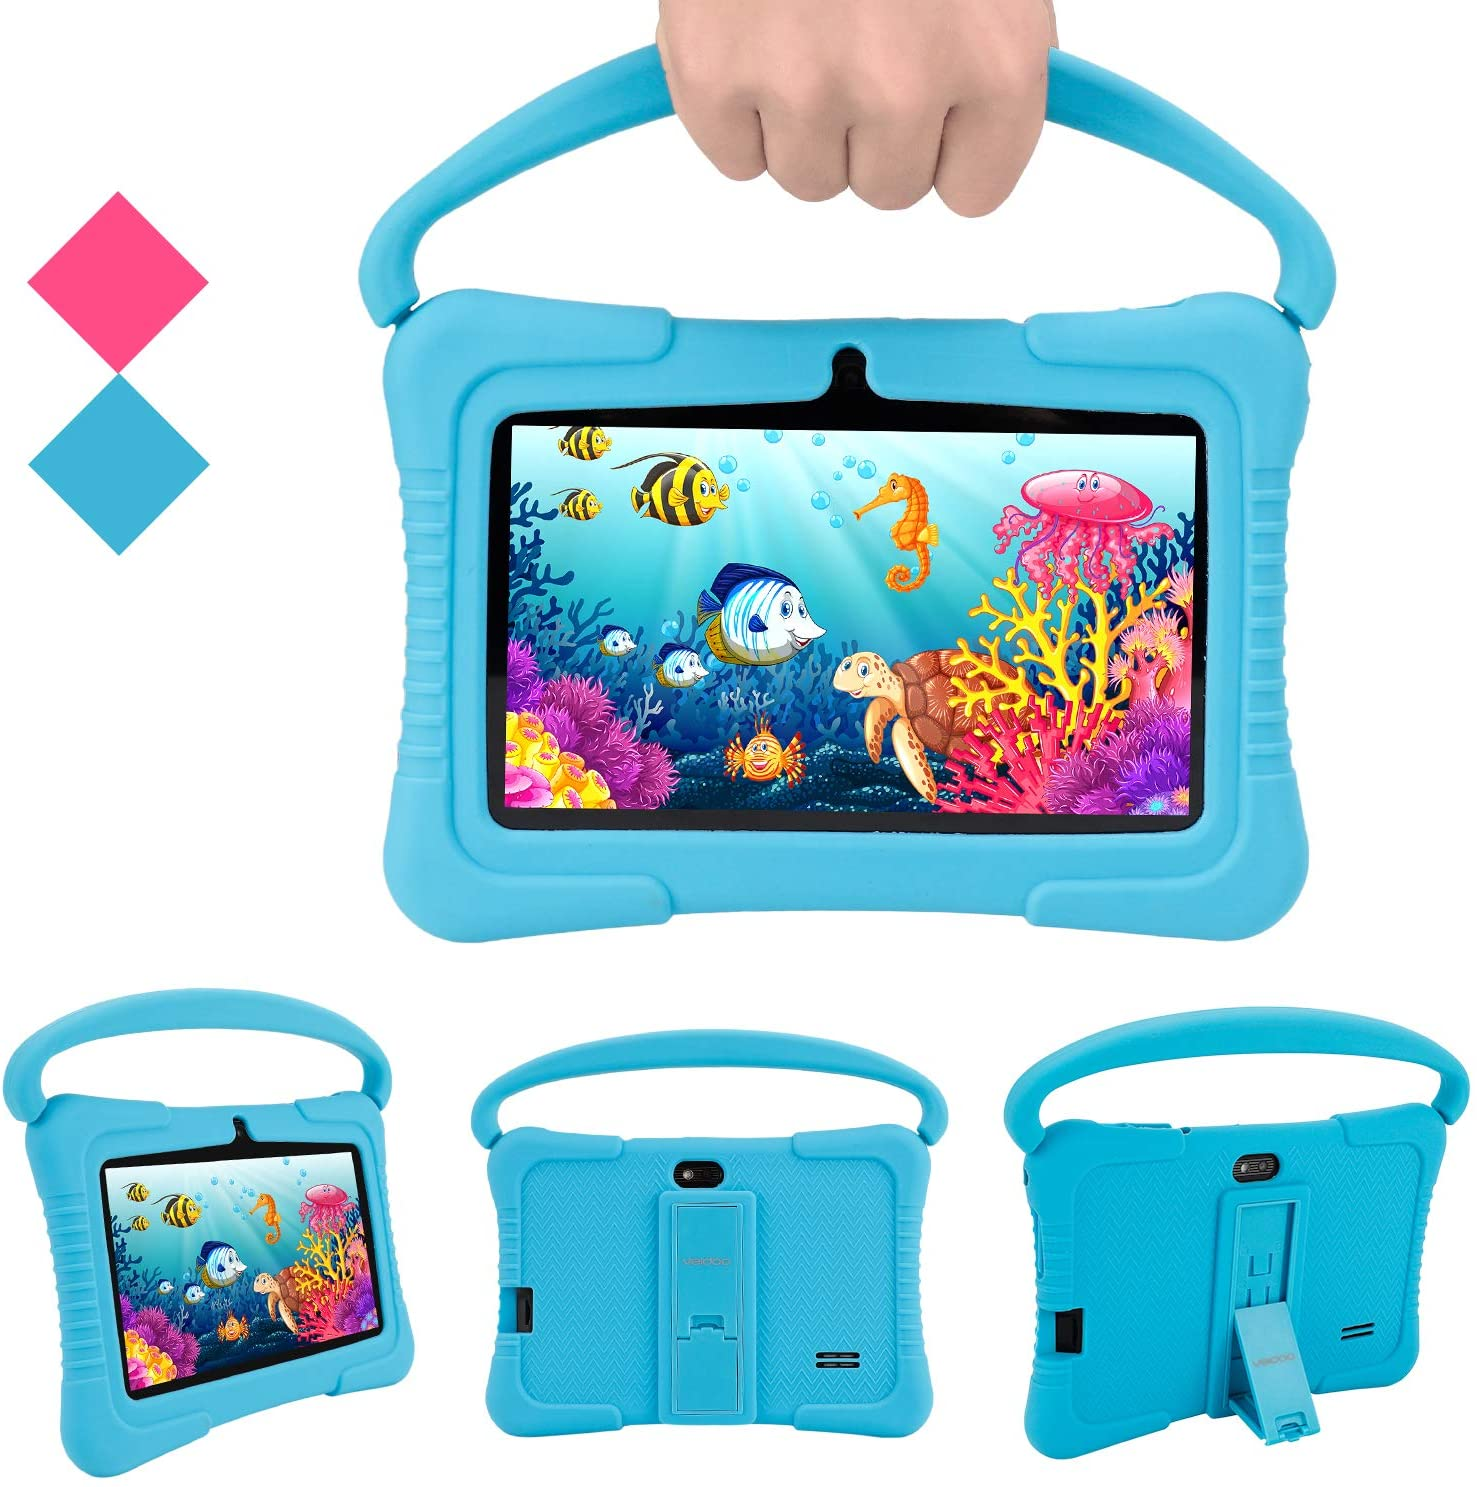 Android Tablets PC, Veidoo 7 inch Kids Tablet with 1GB Ram 16GB Storage, Safety Eye Protection IPS Screen, Premium Parent Control Pre-Installed Educational APP, Best Gift for Children (Blue)